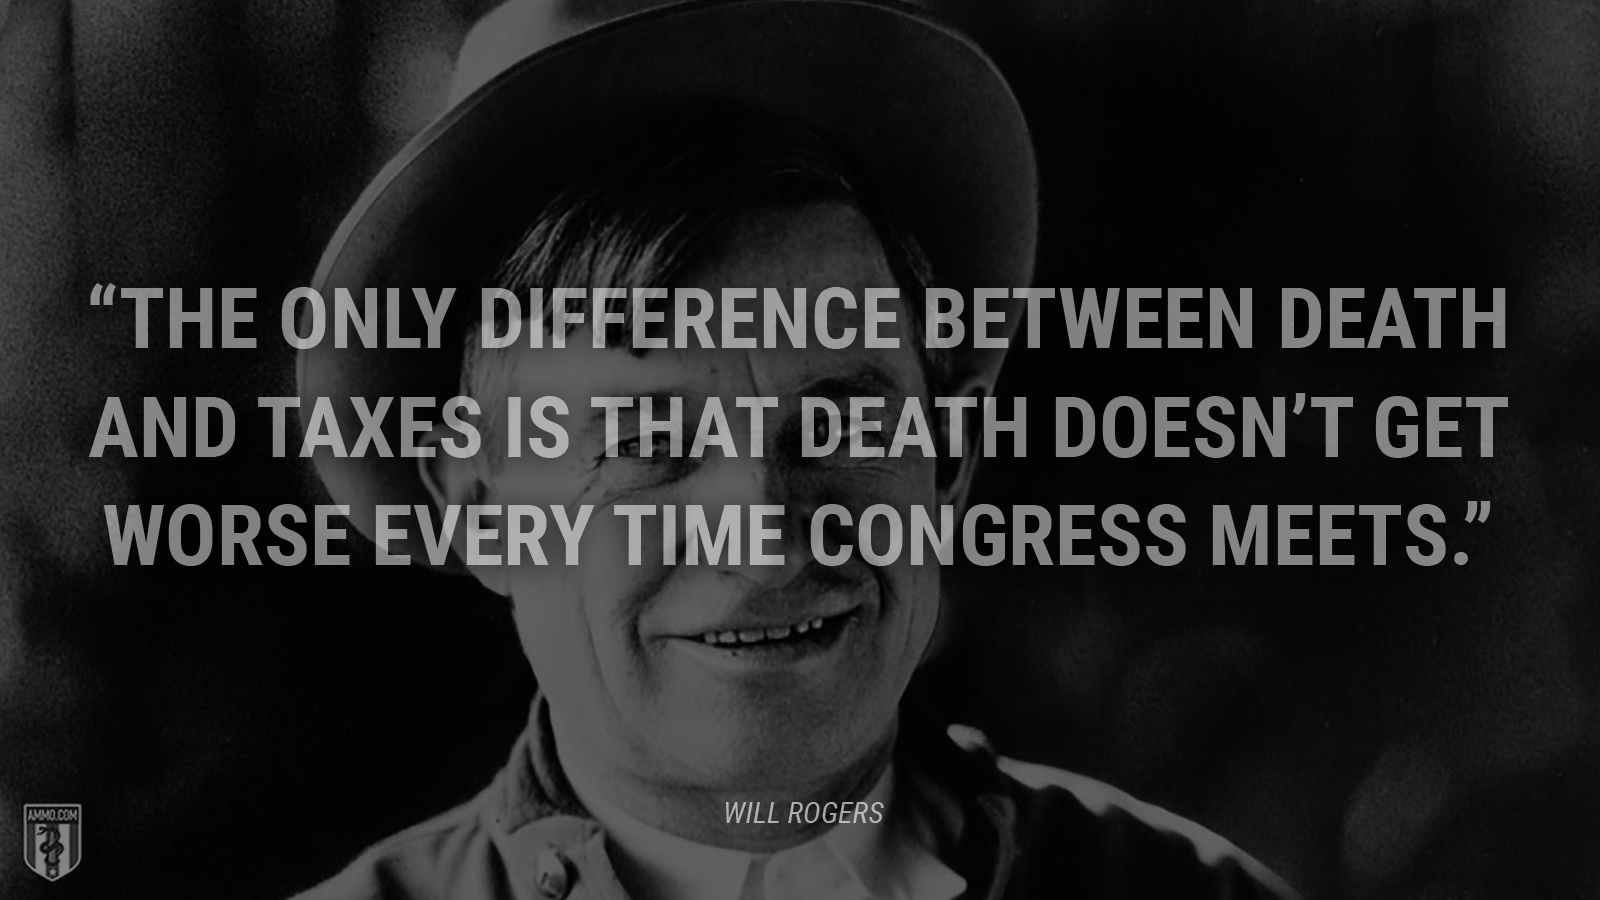 """The only difference between death and taxes is that death doesn't get worse every time Congress meets."" - Will Rogers"